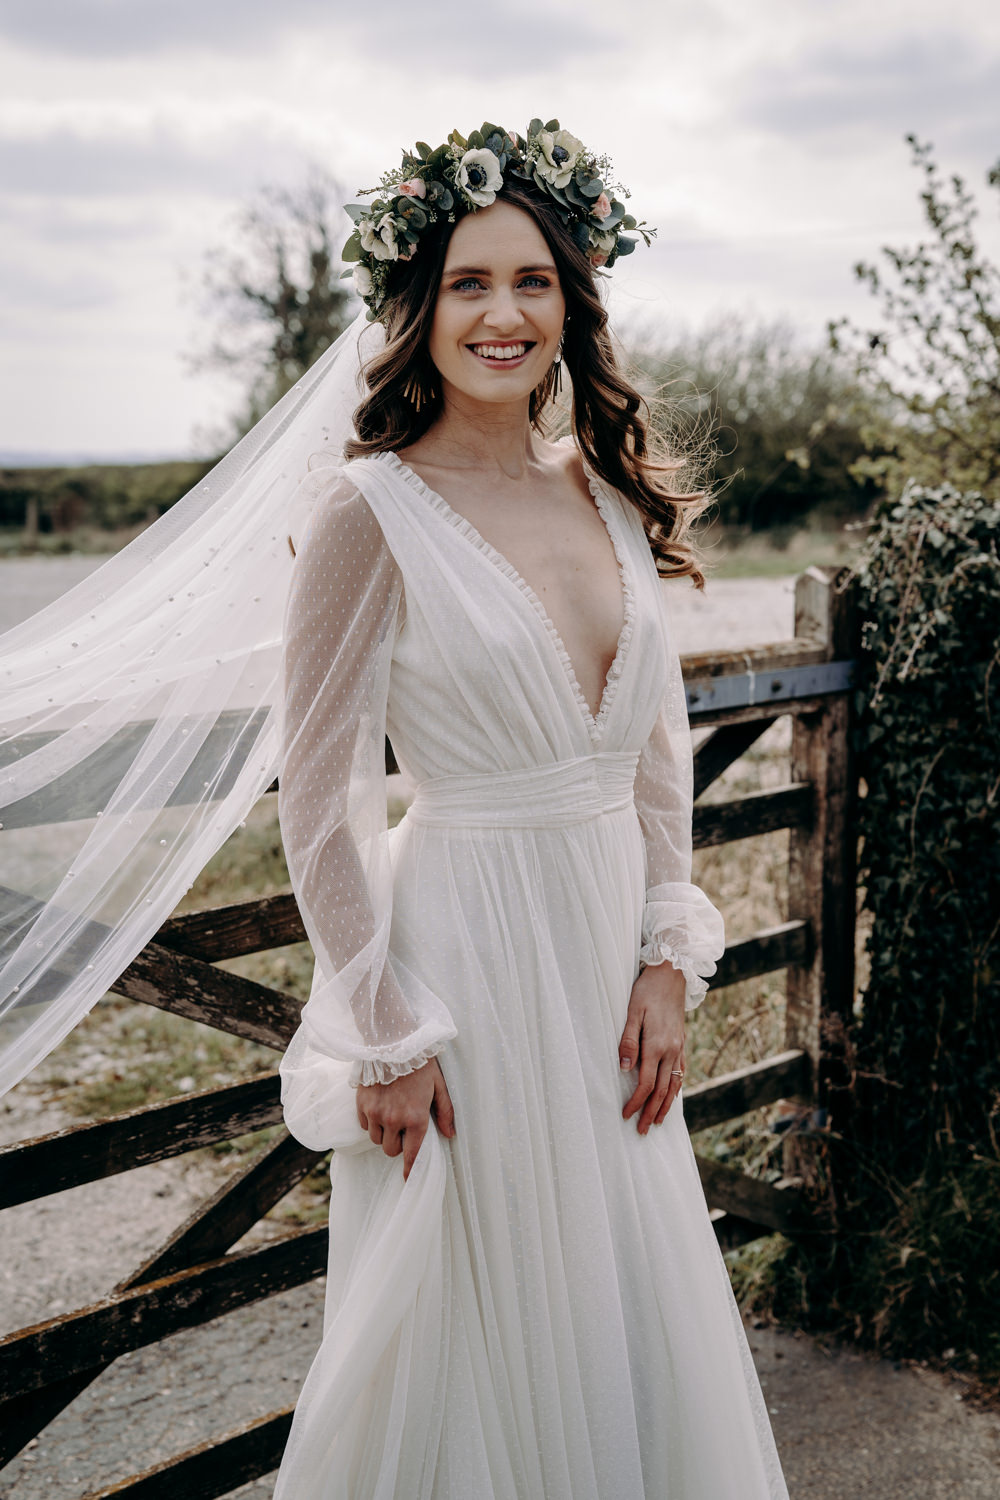 Bride Bridal Dress Gown Kula Tsurdiu Tulle Long Sleeves Train Veil Free Spirited Wedding Ideas EKR Pictures